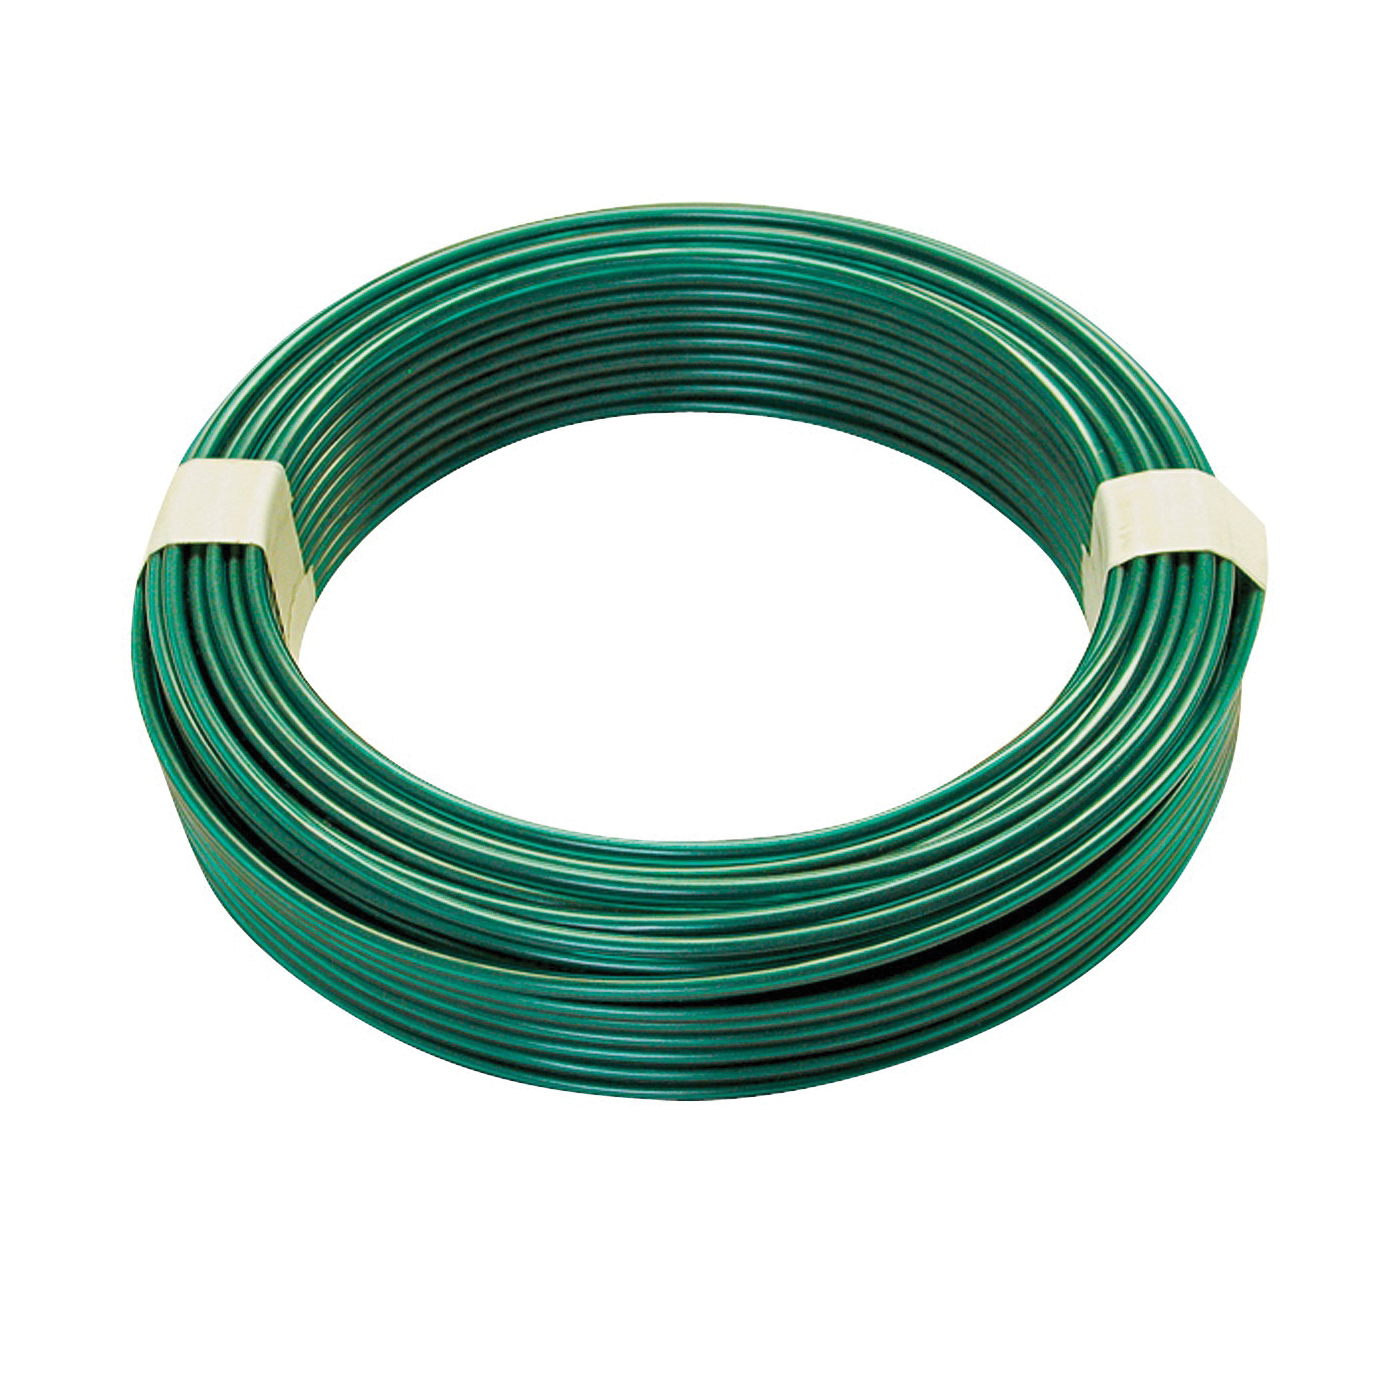 Picture of HILLMAN 50149 Clothesline, 100 ft L, Steel, Green